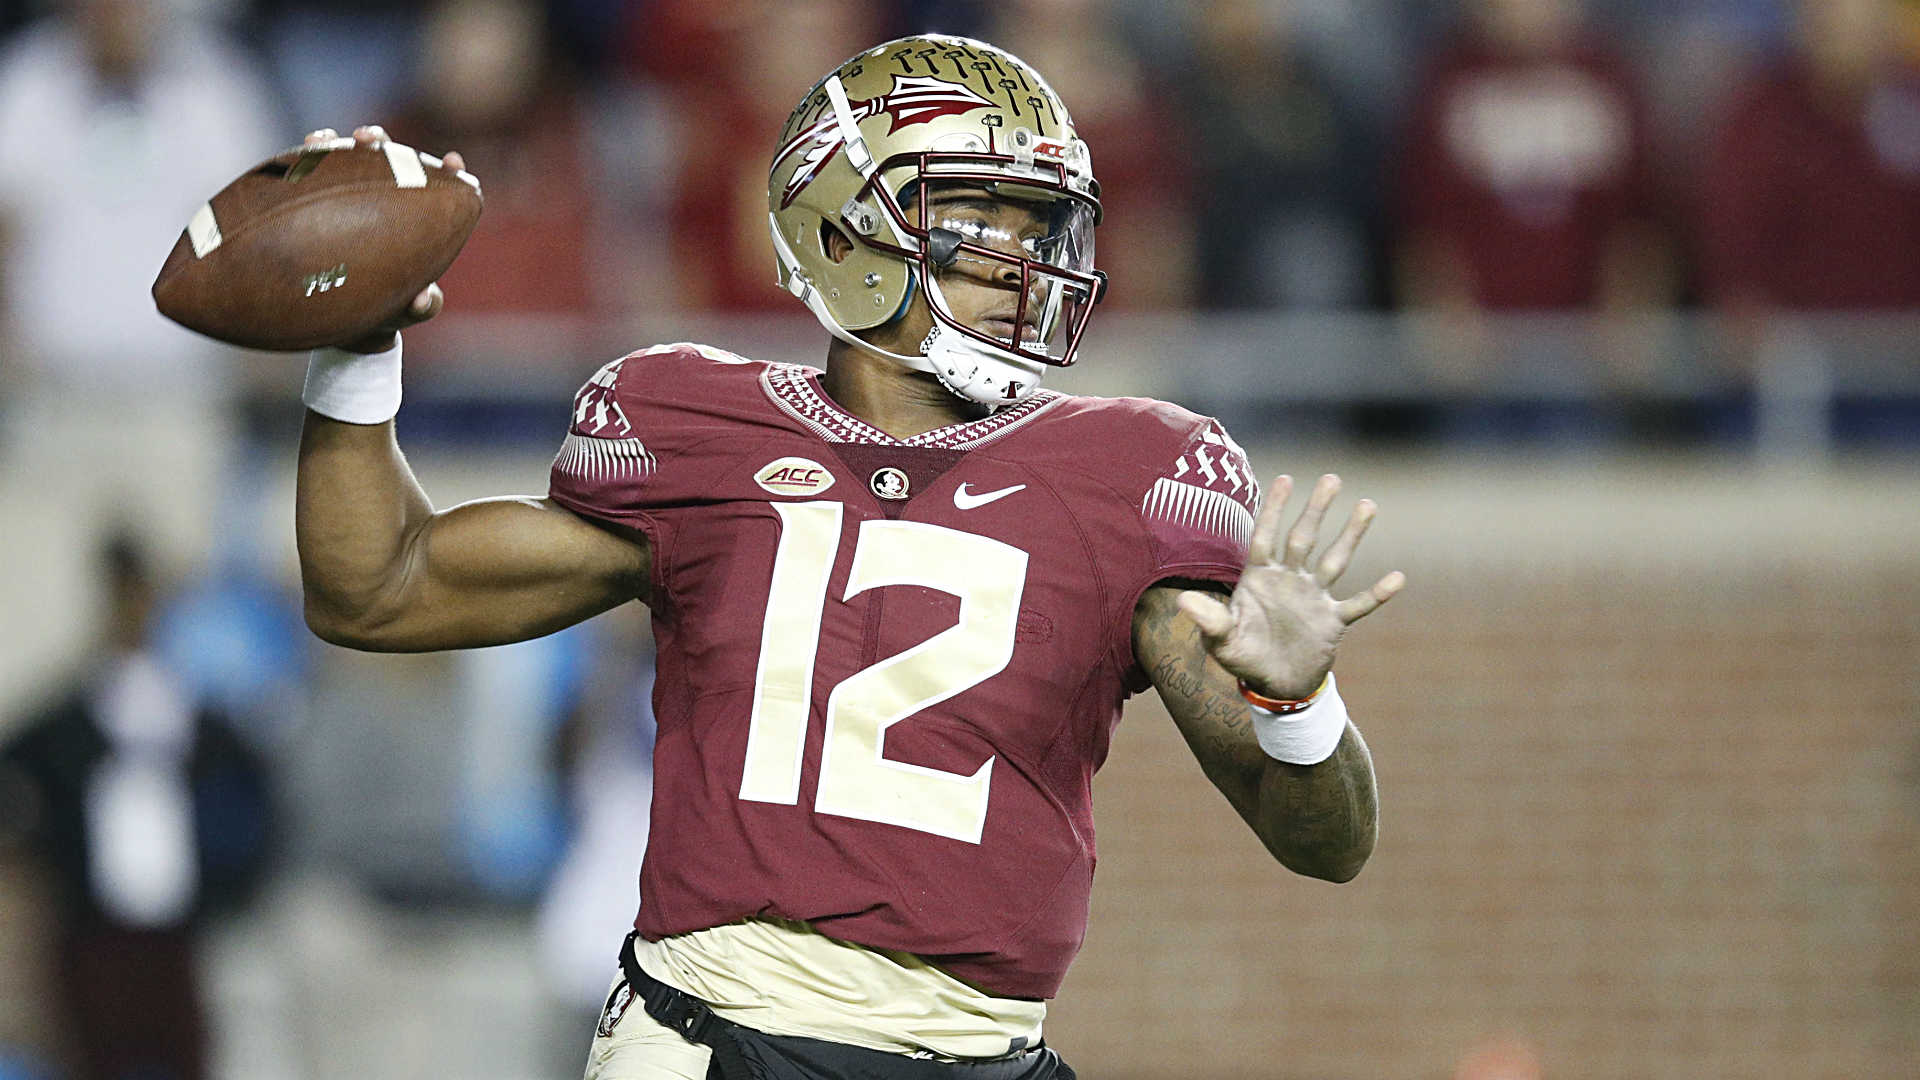 FSU Quarterback Under Investigation for Domestic Violence Incident